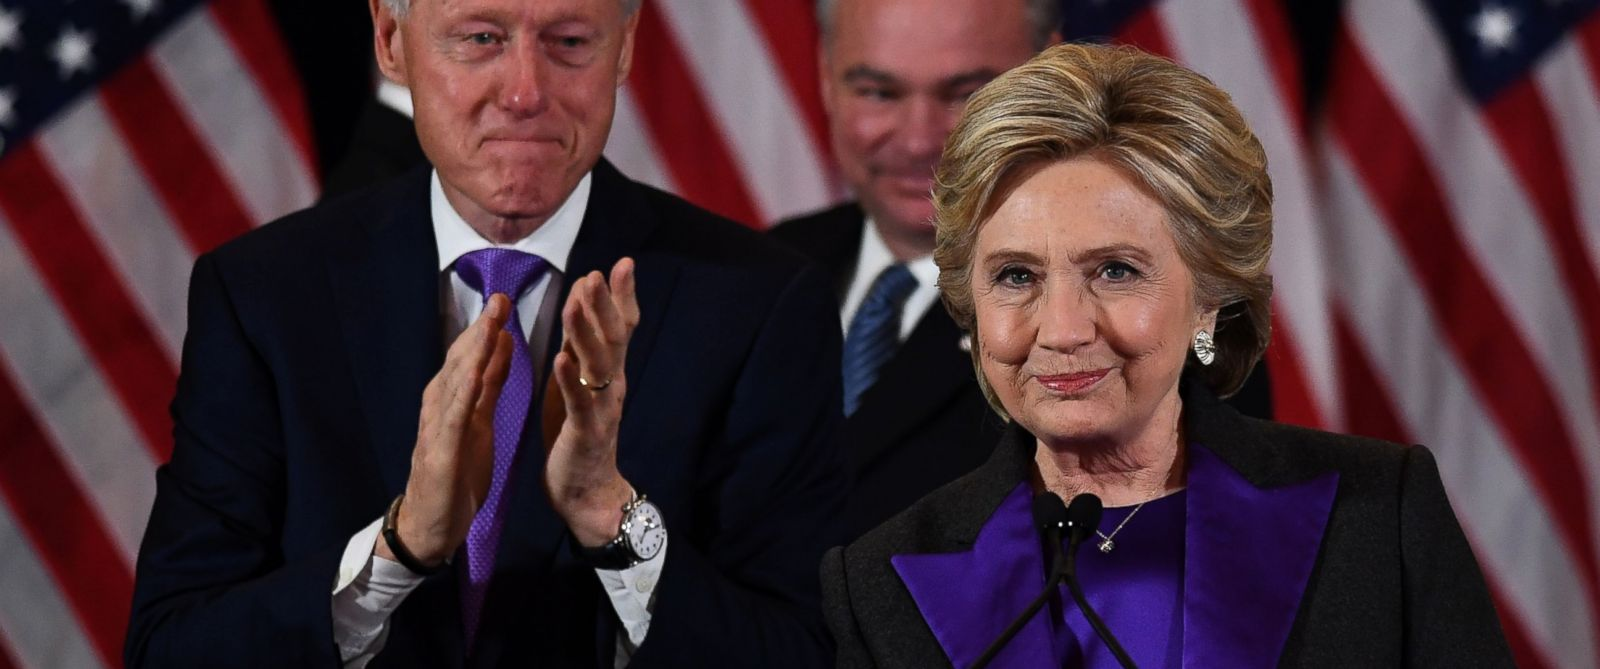 PHOTO: Presidential candidate Hillary Clinton makes a concession speech as former President Bill Clinton and running mate Tim Kaine look on in New York on Nov. 9, 2016.